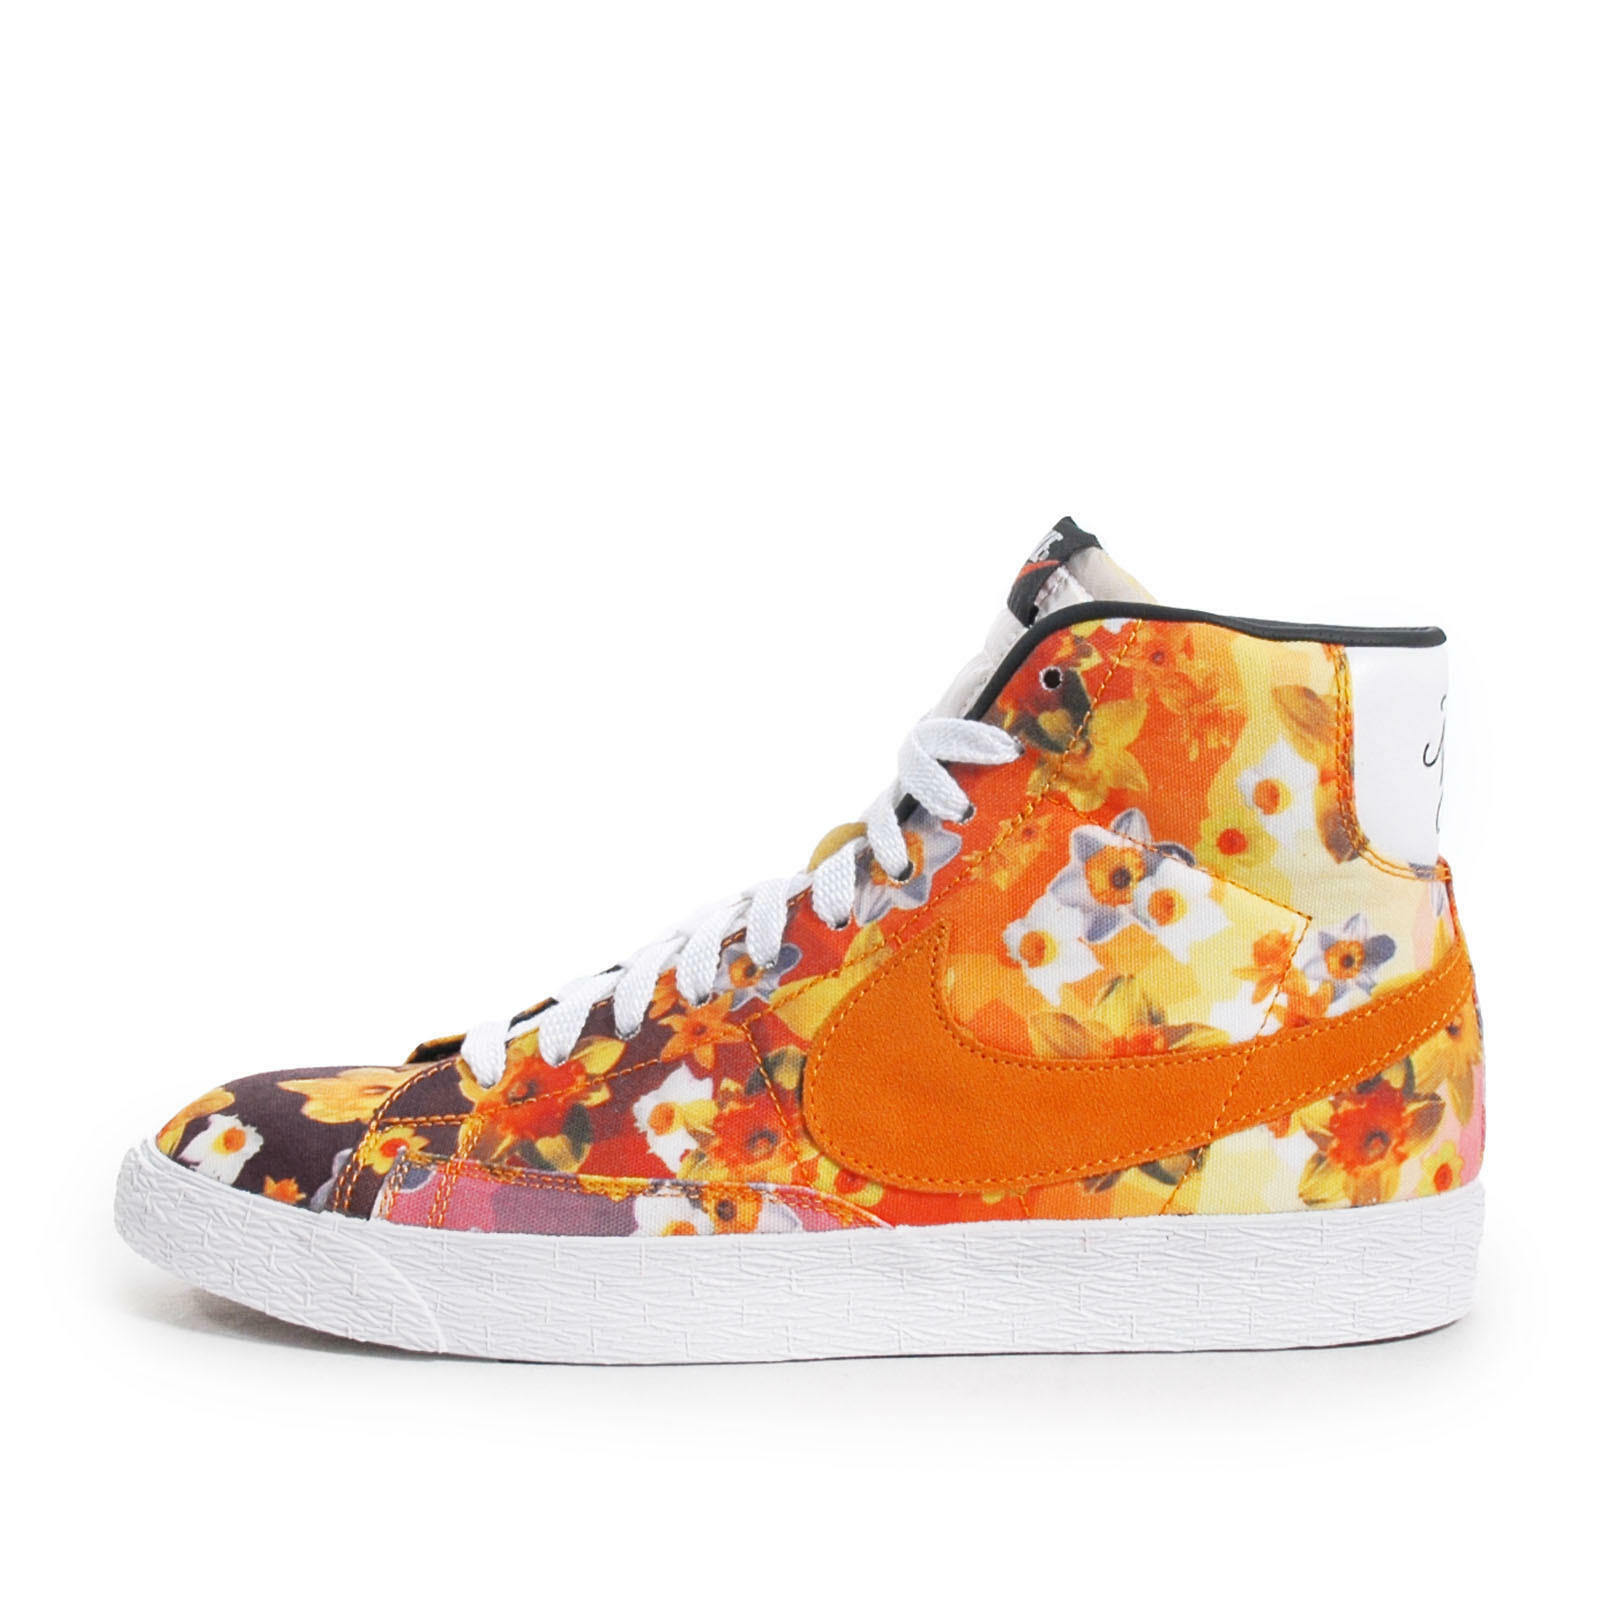 nike vntg [638322-901] qs blazer mid prm [638322-901] vntg nsw casual floral stadt pack in new york b0f37c